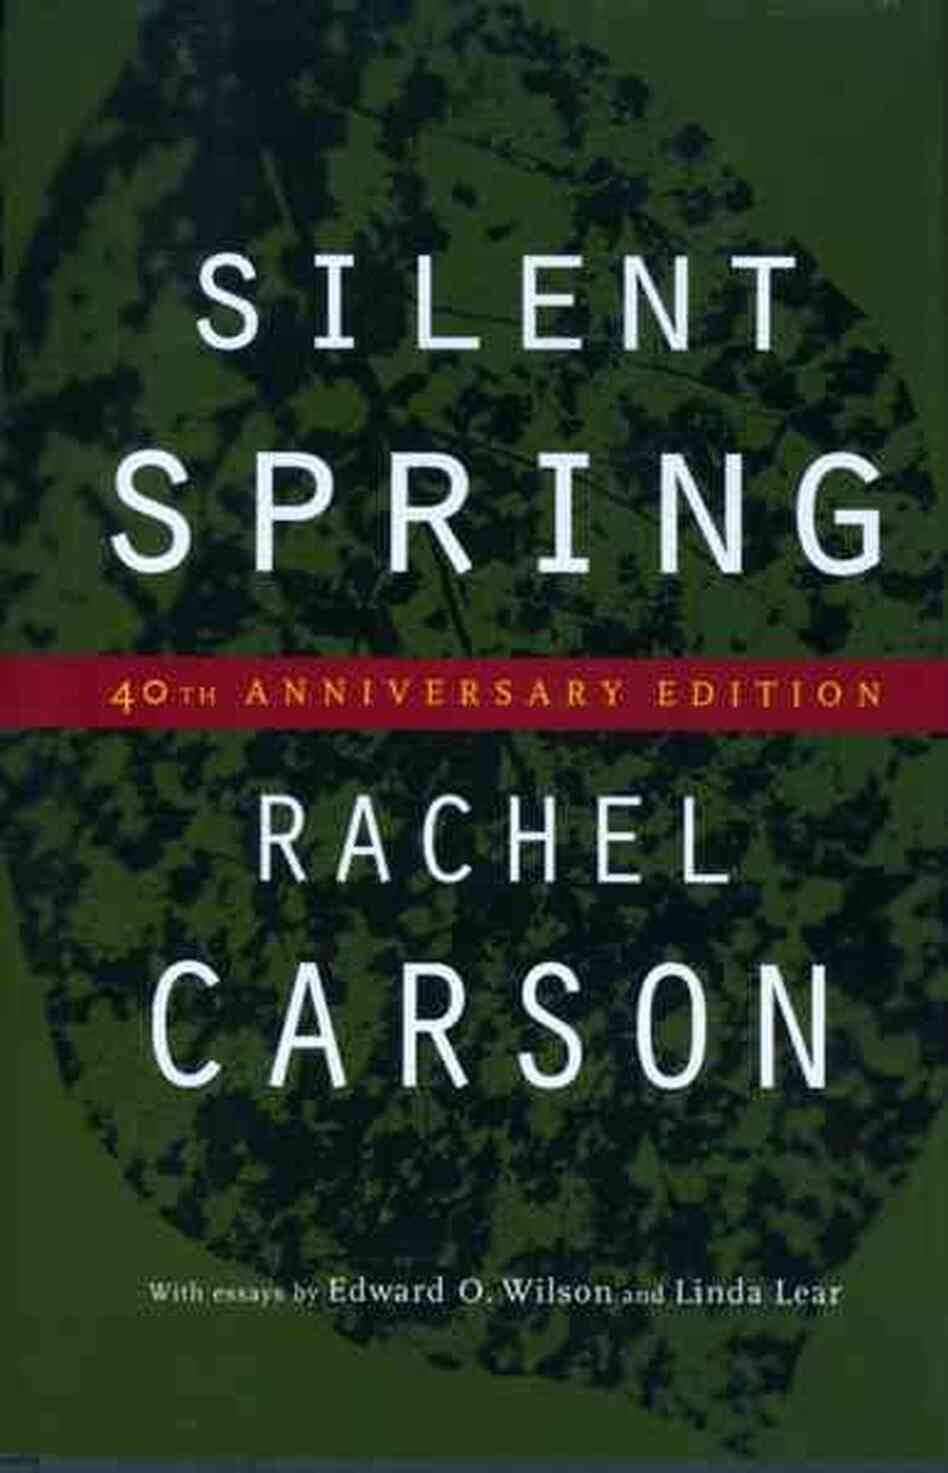 book review of silent spring Silent spring is an environmental science book by rachel carson the book was published on 27 september 1962 and it documented the adverse effects on the environment of the indiscriminate use of pesticides carson accused the chemical industry of spreading disinformation and public officials of accepting industry claims unquestioningly.